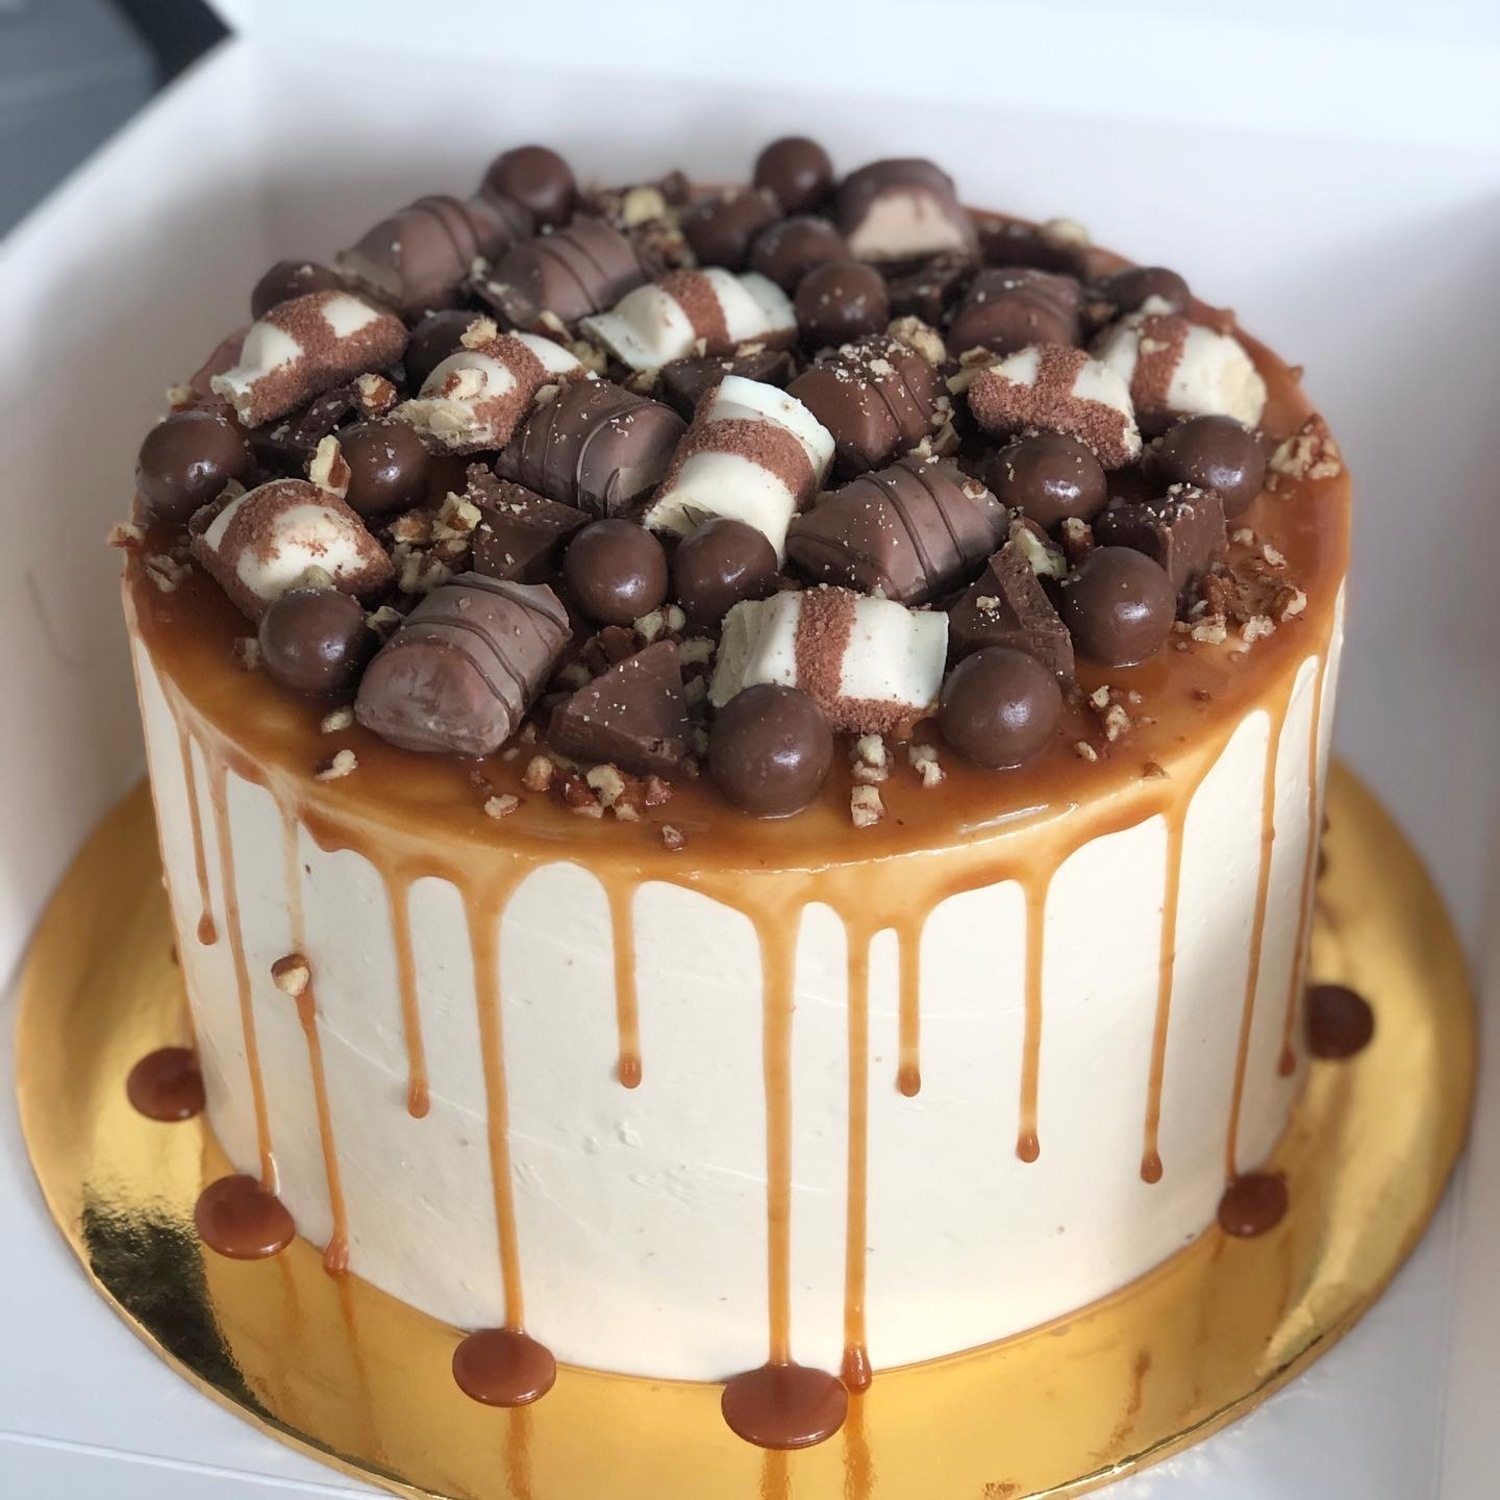 Butterscotch Cake with Toppings.jpg